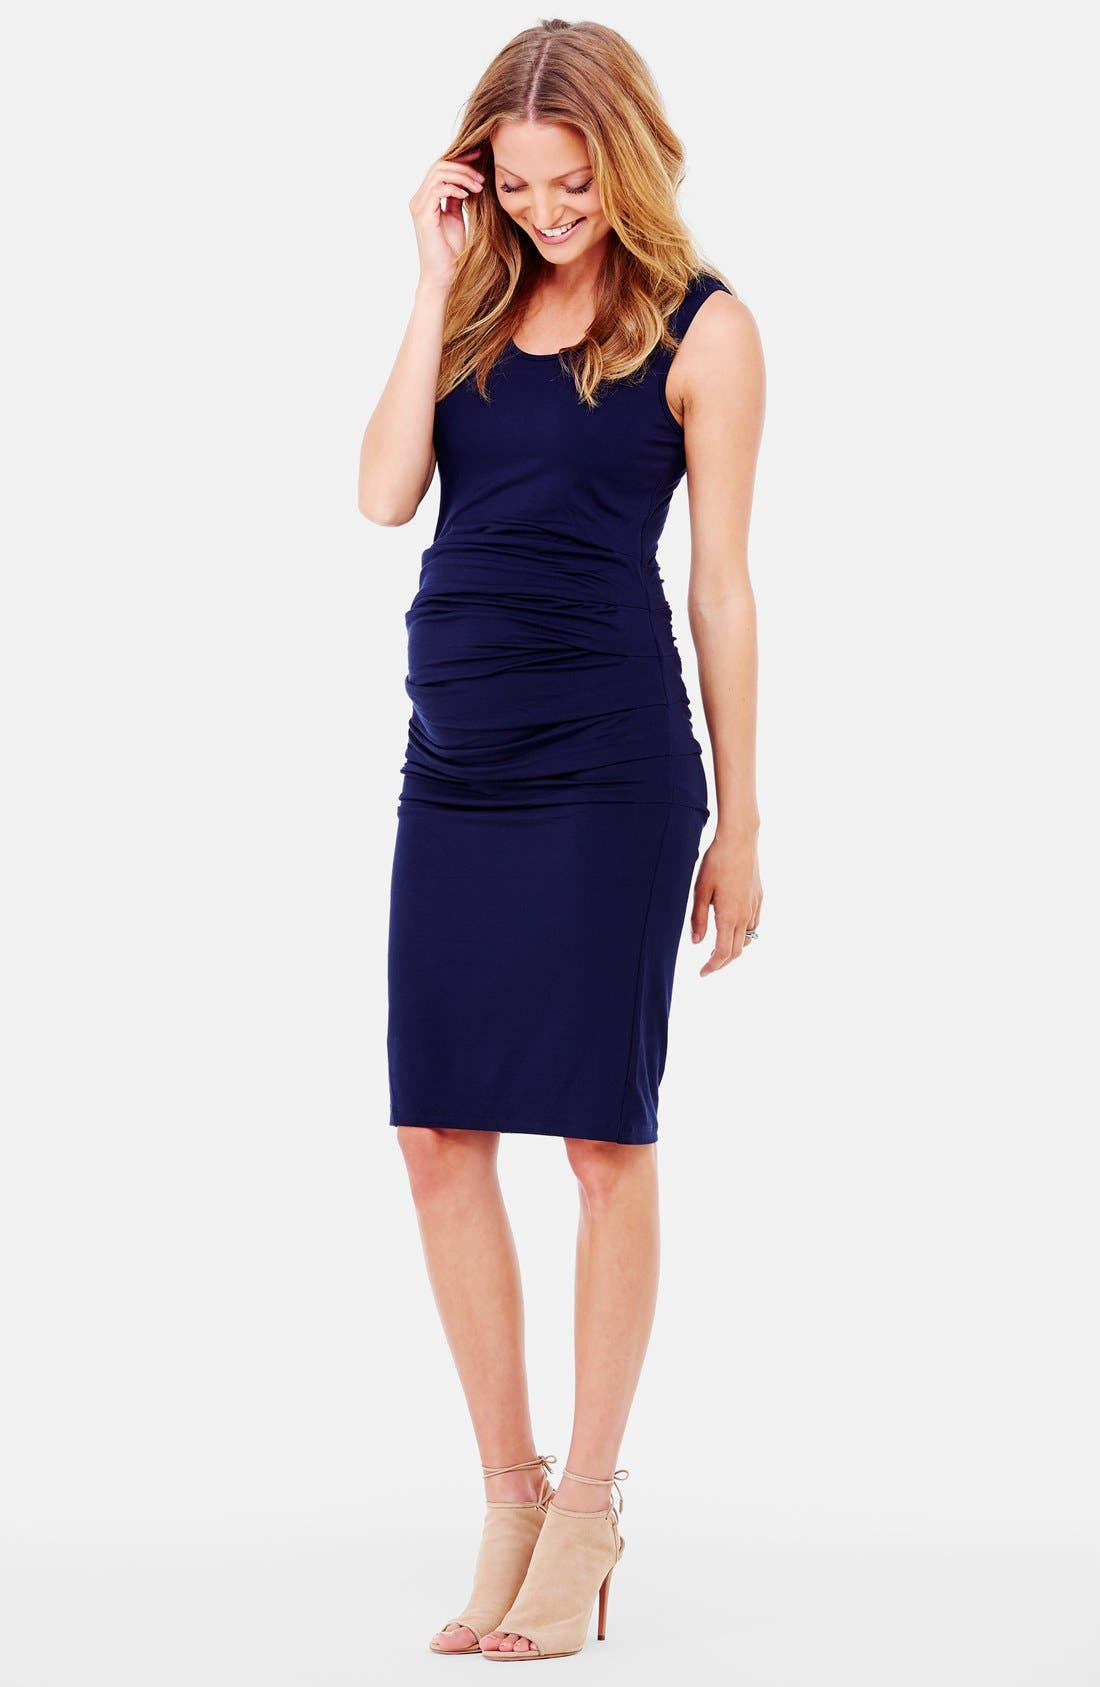 Womens maternity dresses nordstrom ombrellifo Image collections